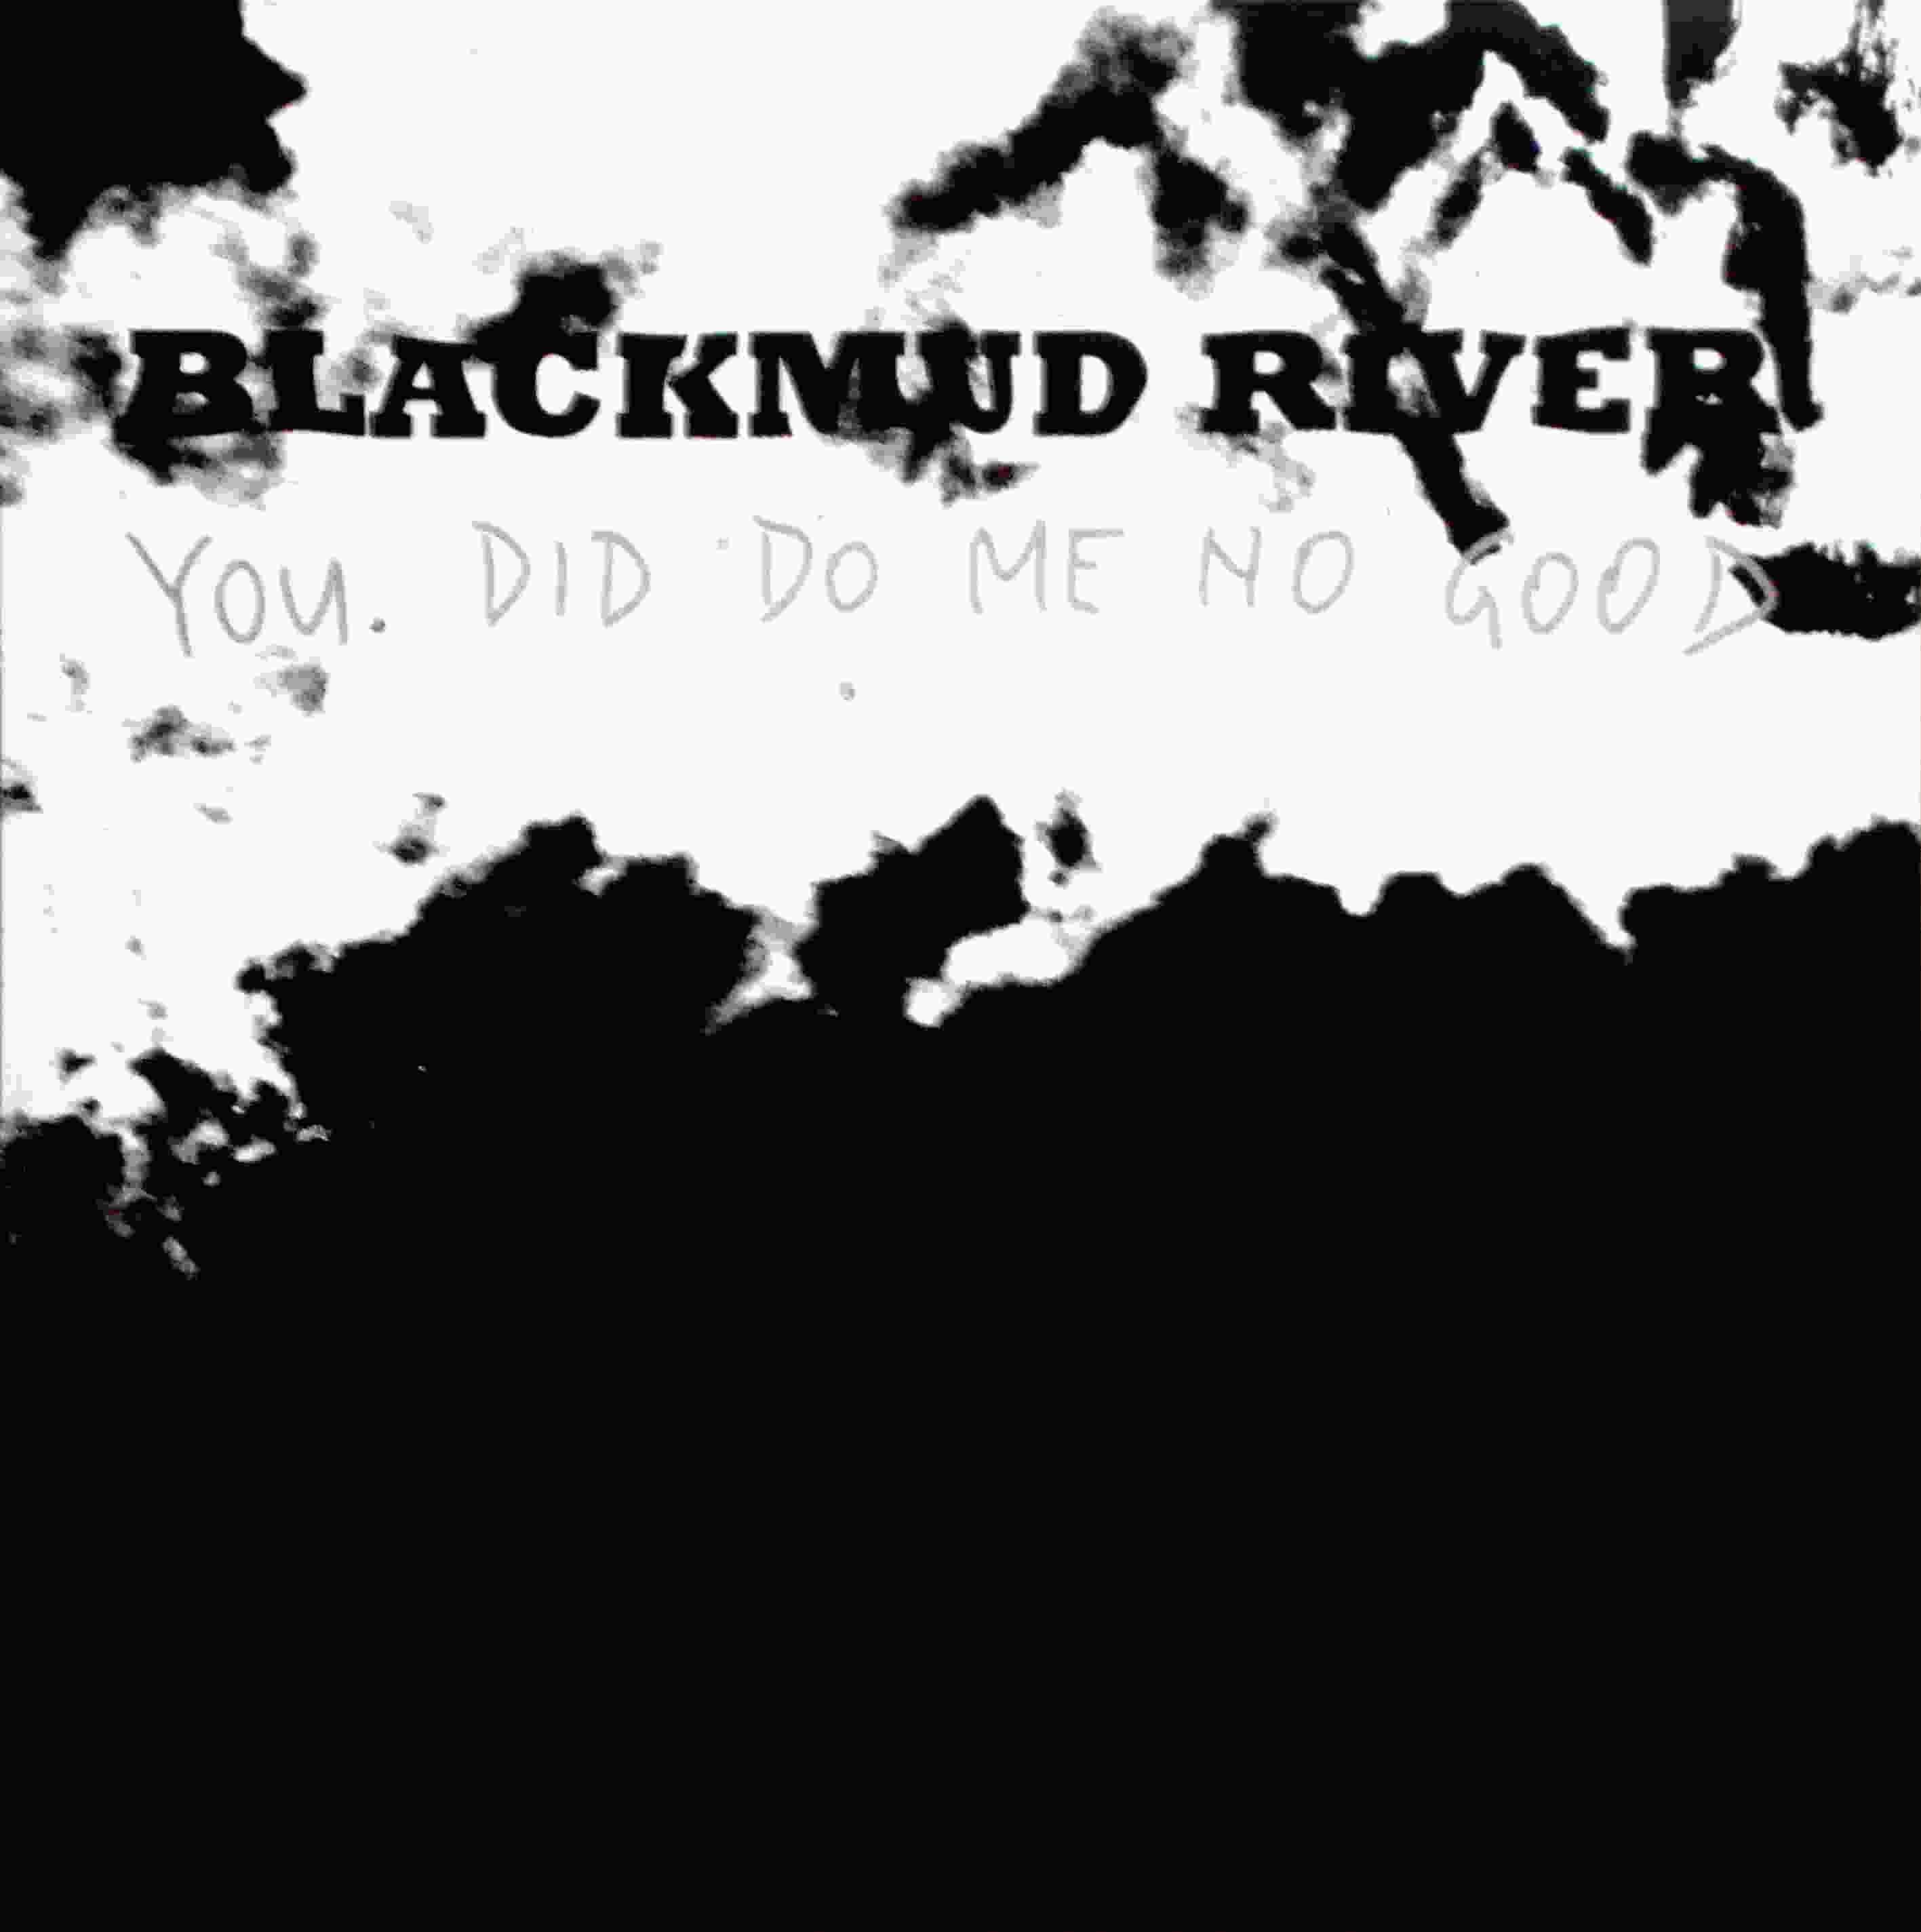 blackmud river - you did do me no good